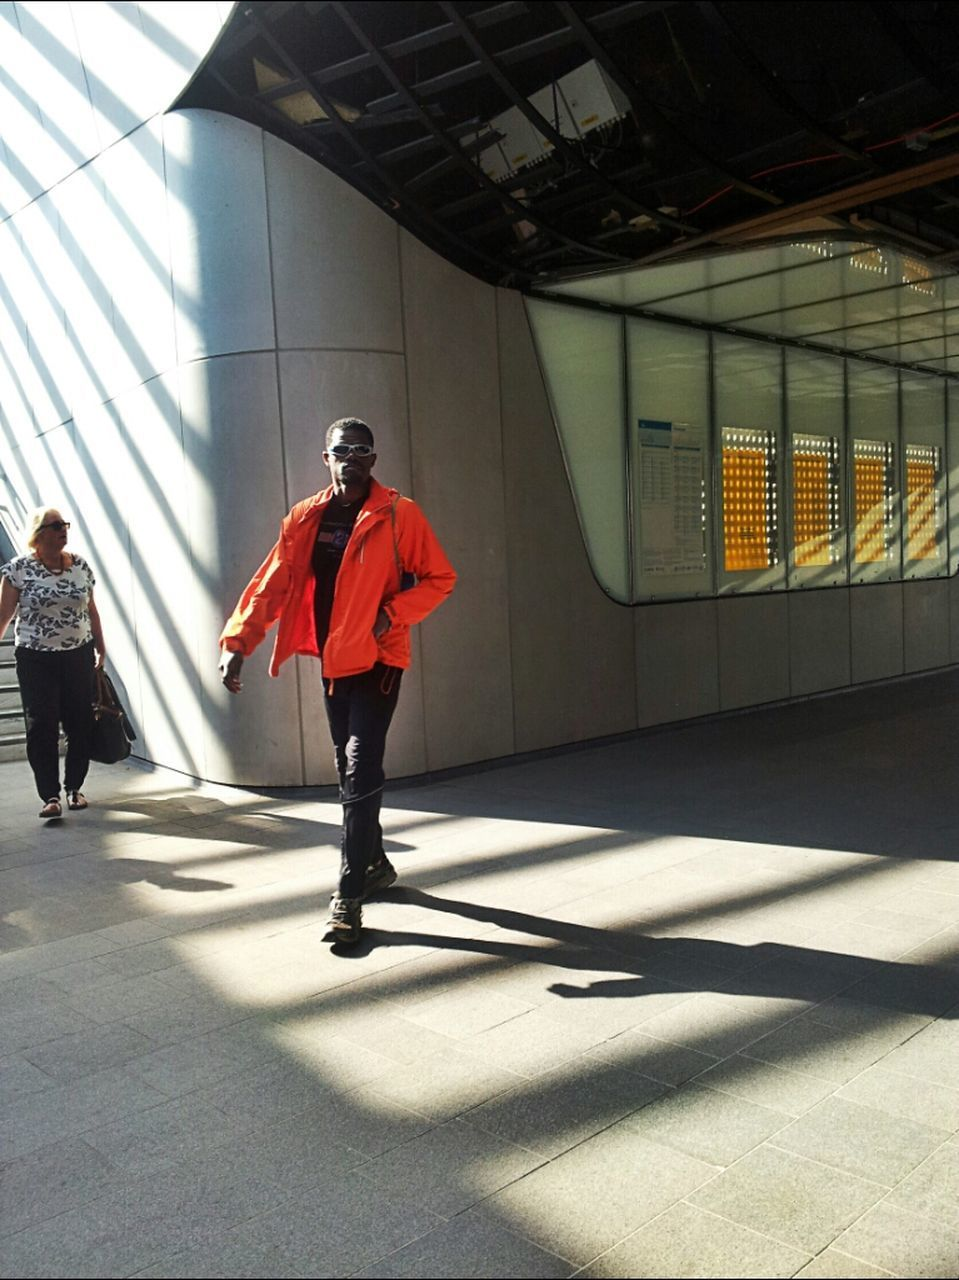 full length, walking, lifestyles, built structure, architecture, men, rear view, leisure activity, casual clothing, person, building exterior, the way forward, city life, indoors, city, on the move, street, standing